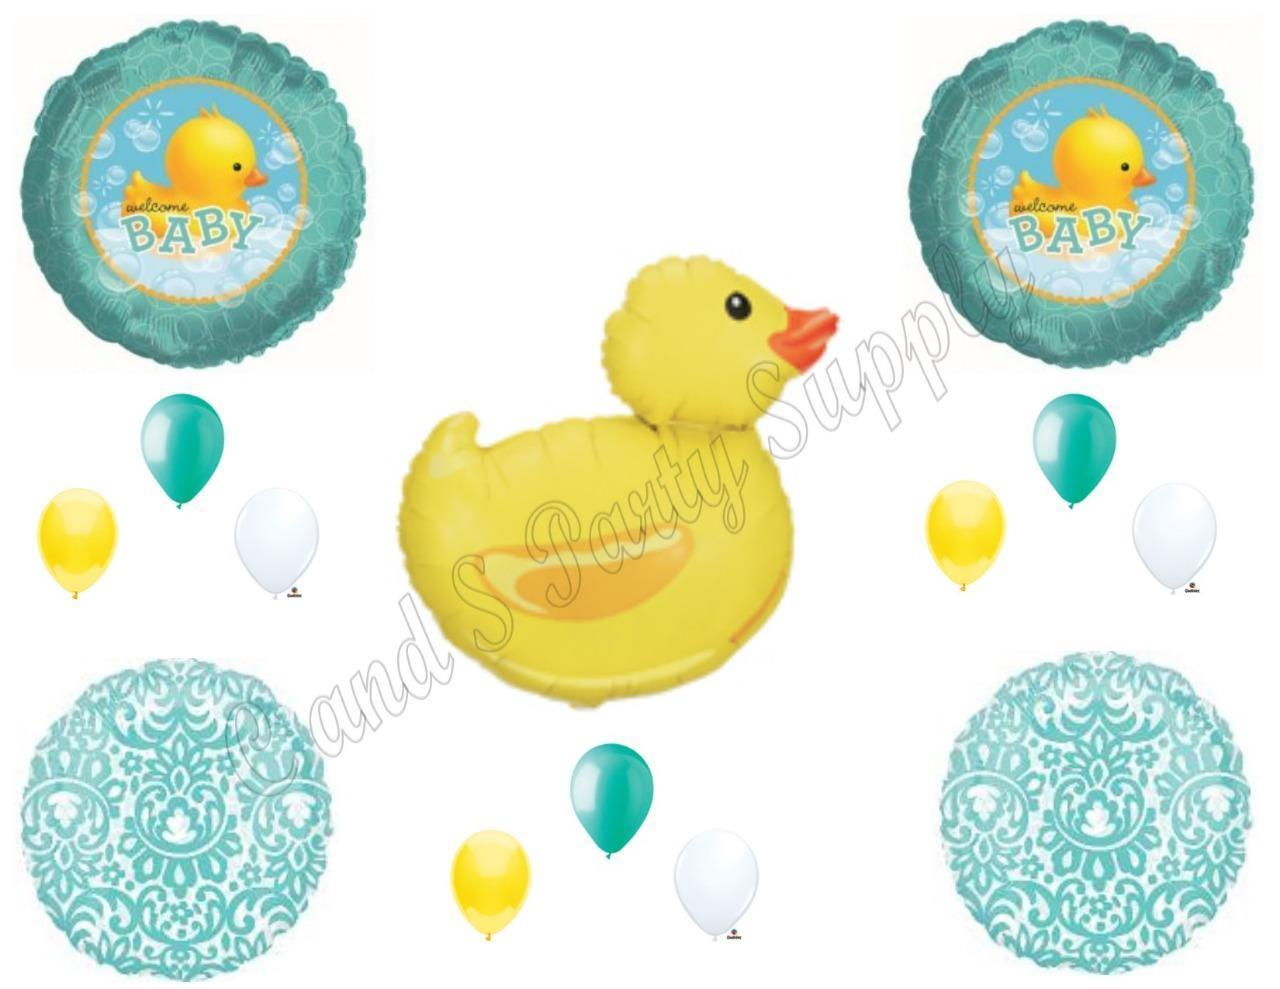 Welcome Baby Rubber Duck Bubbles Shower Balloons Decoration Supplies Walmart Com